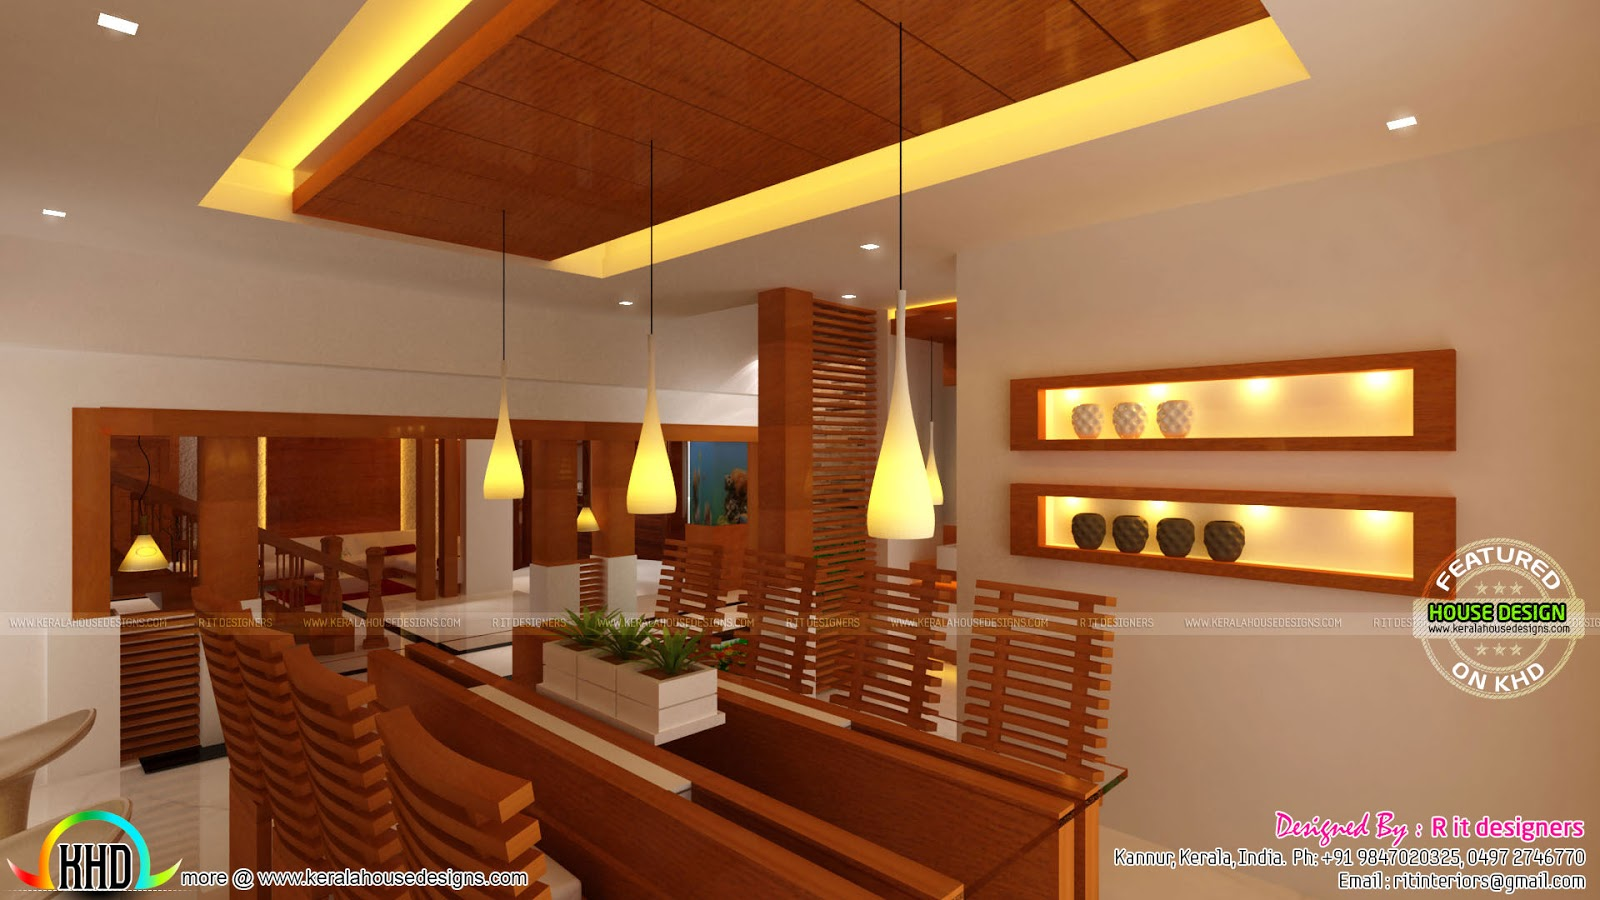 Wooden finish interior designs kerala home design and House design inside